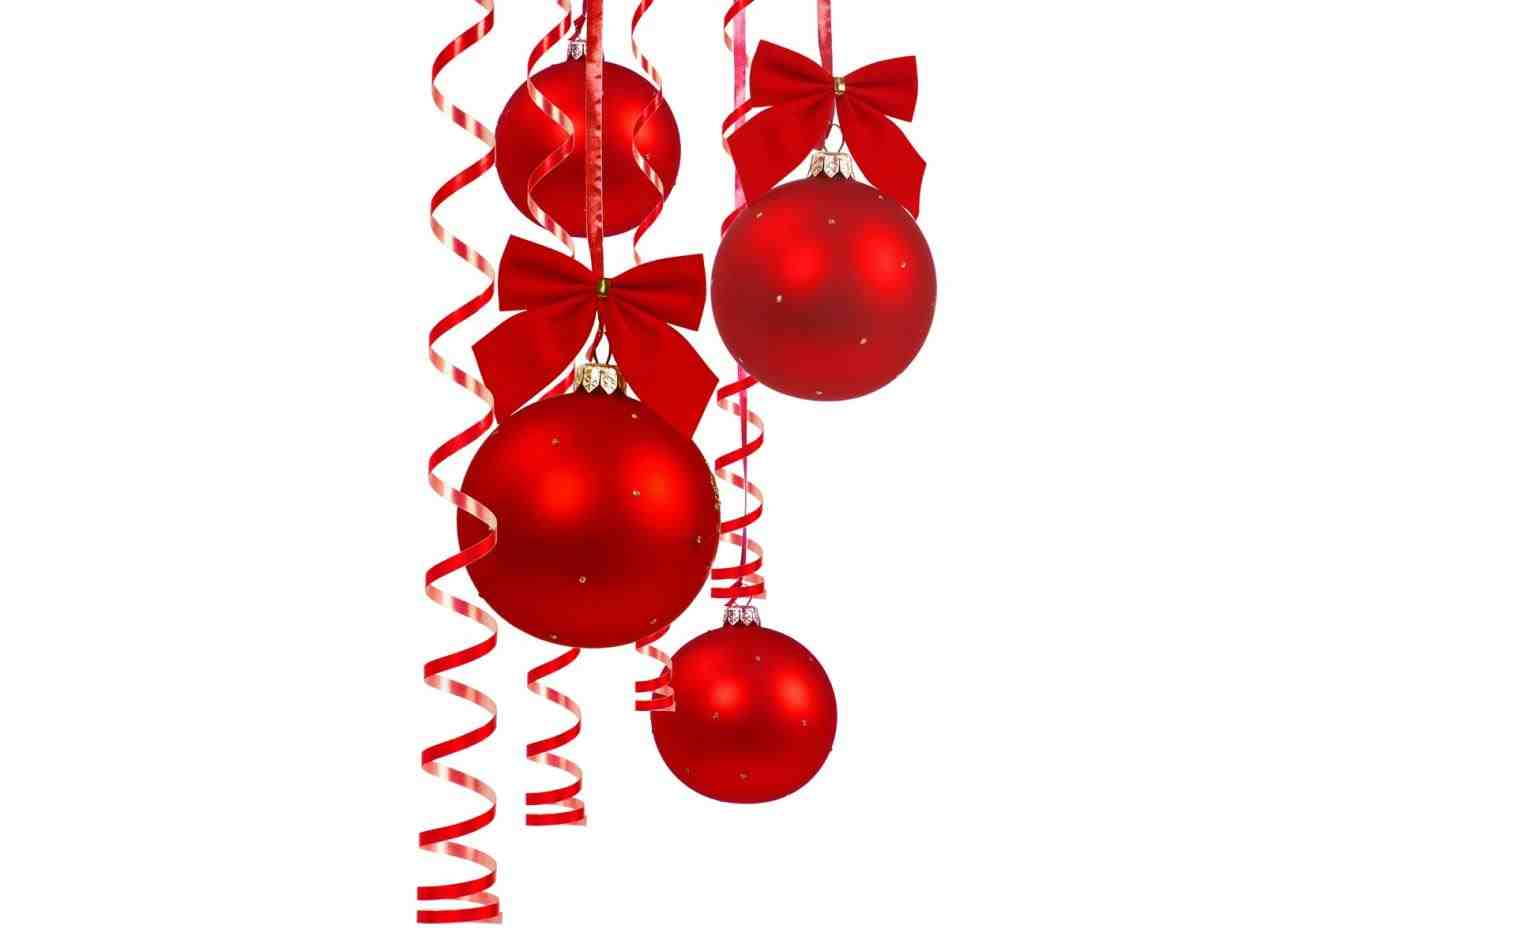 1517x948 Christmas Decorations Clipart Borders Cheminee.website